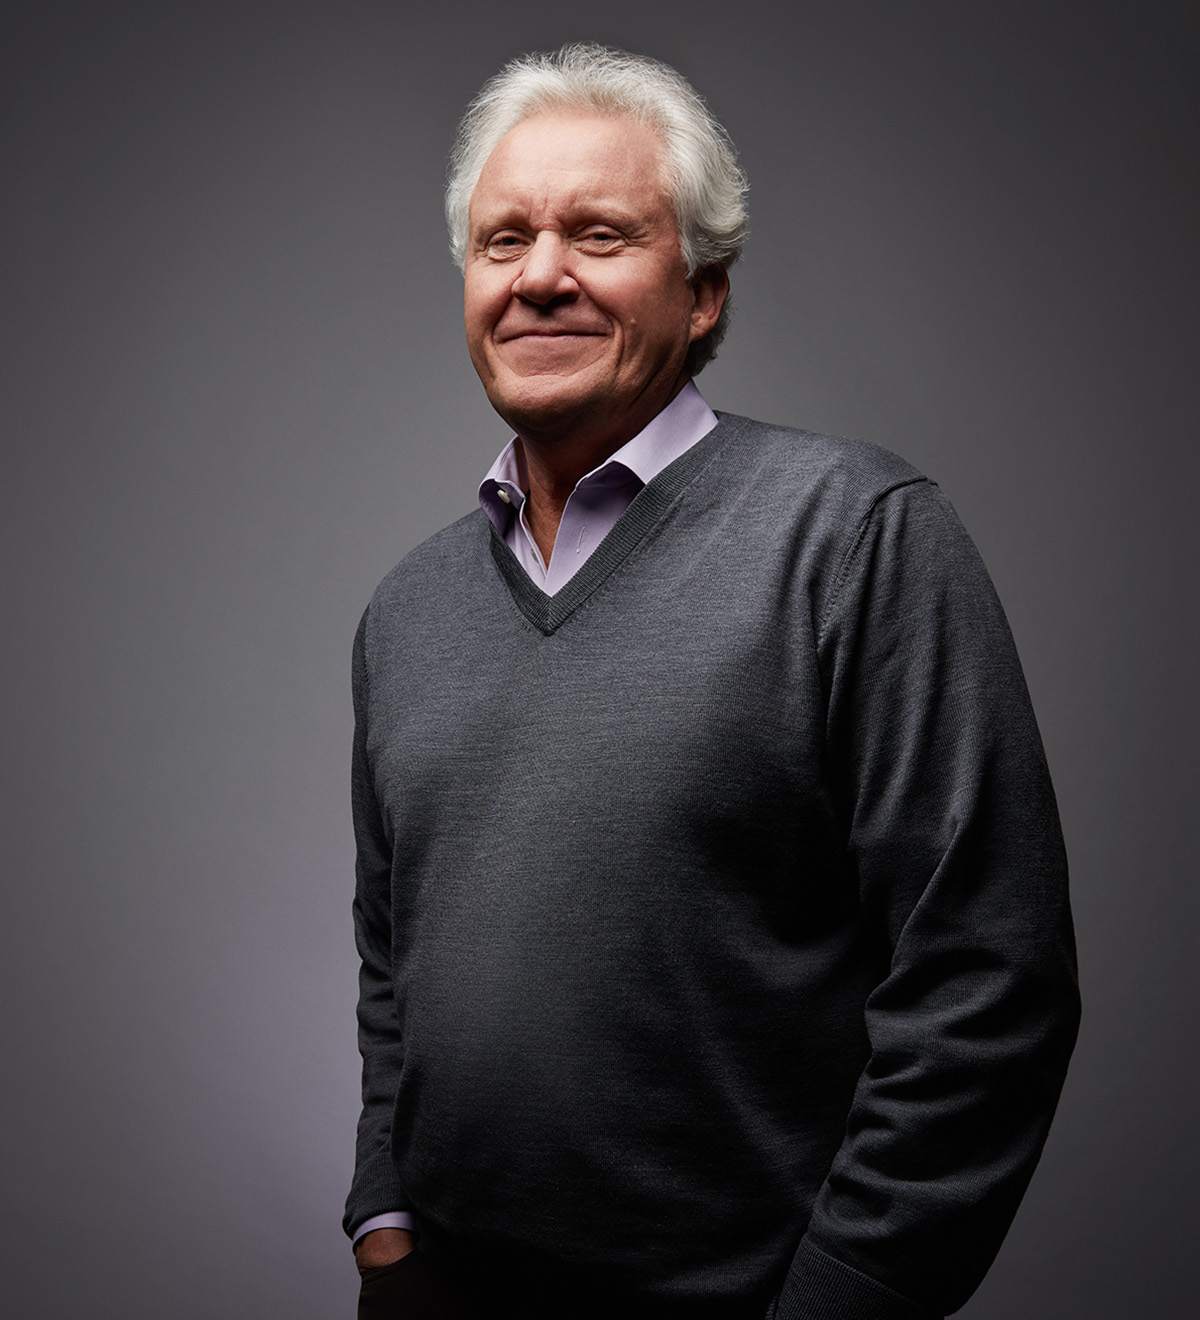 jeff immelt General electric ceo and chairman jeff immelt's job appears secure, at least for nowge.